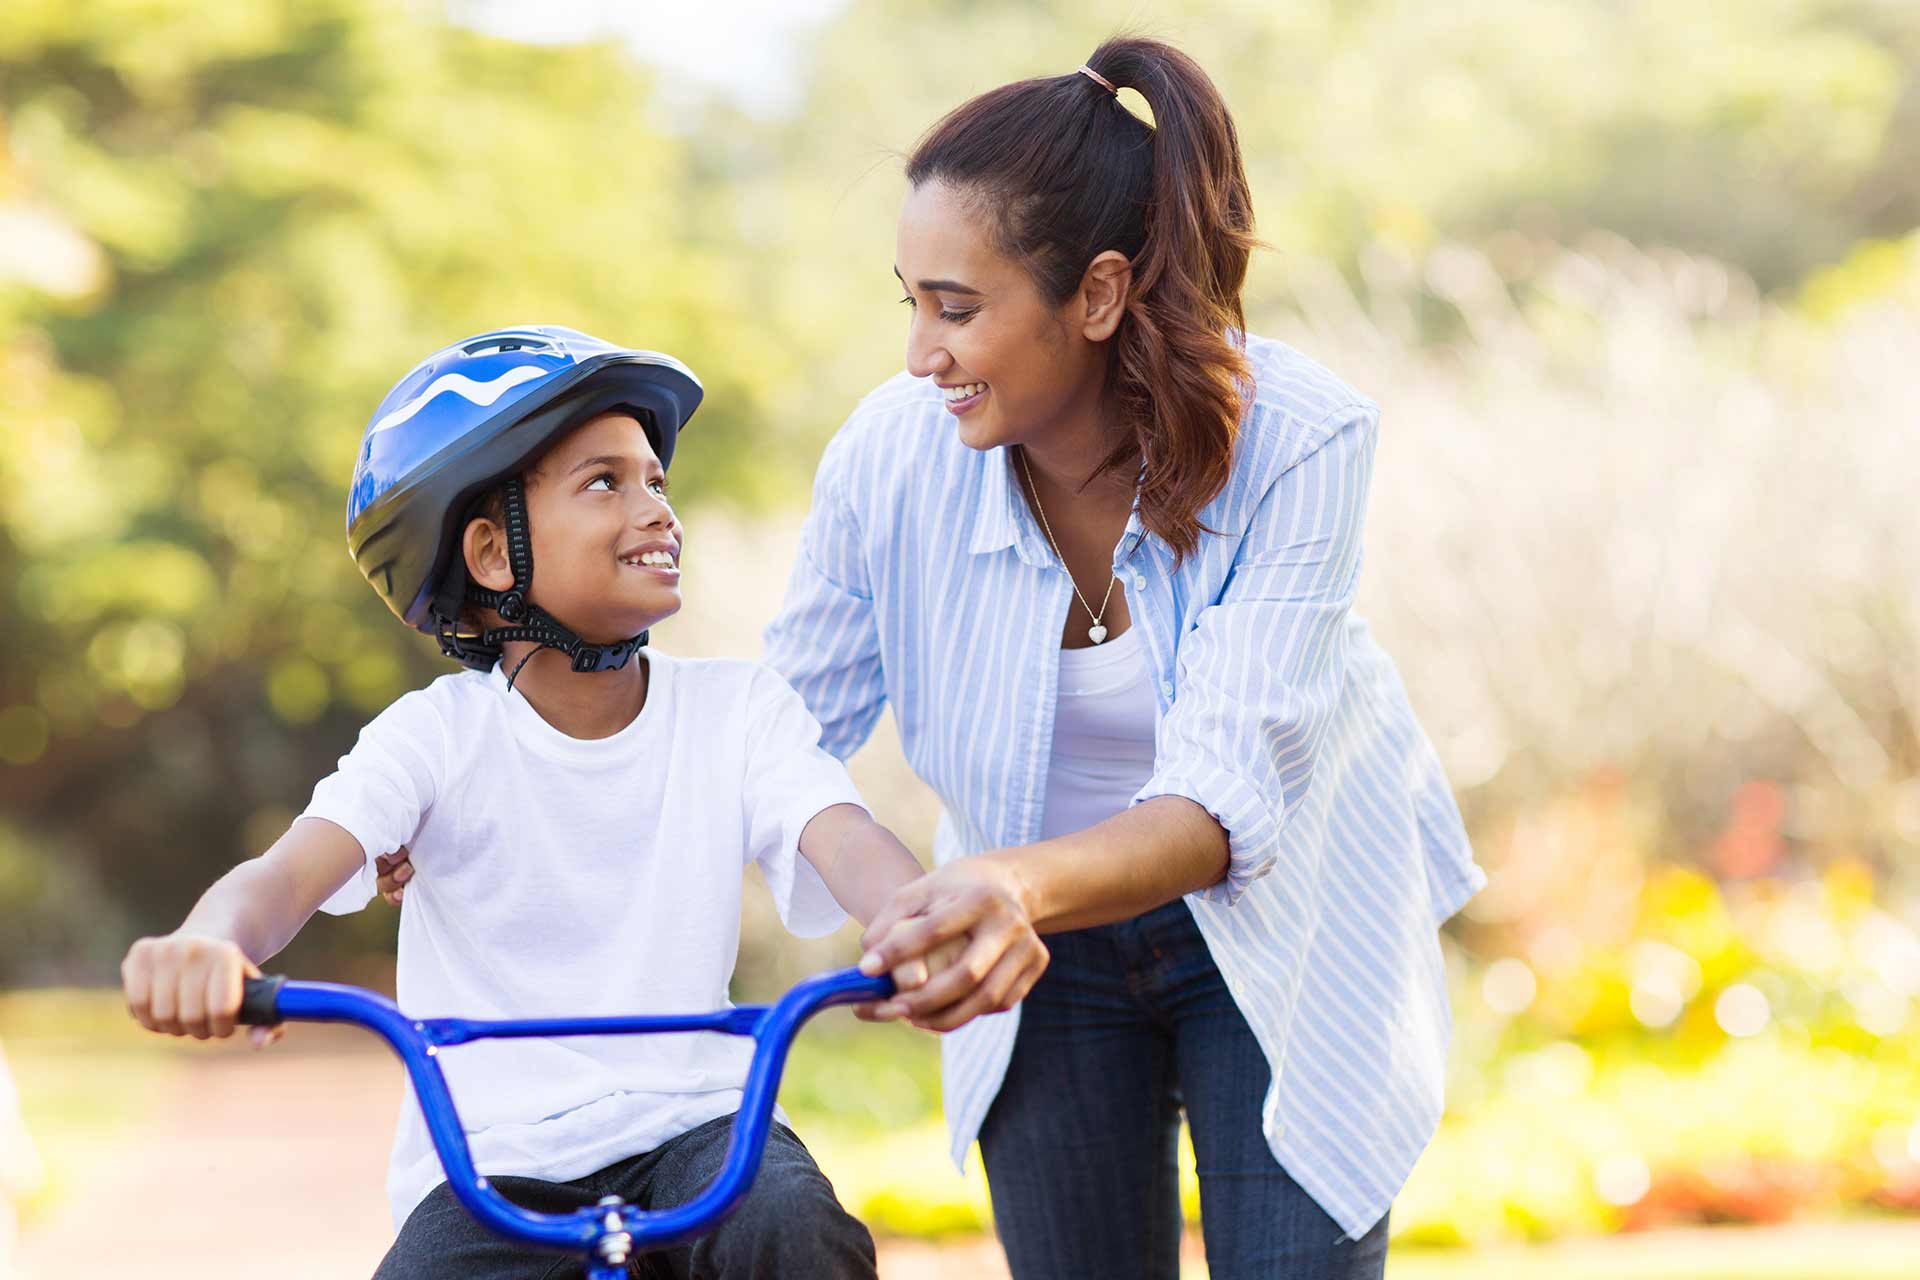 Choosing-the-right-bike-for-your-child